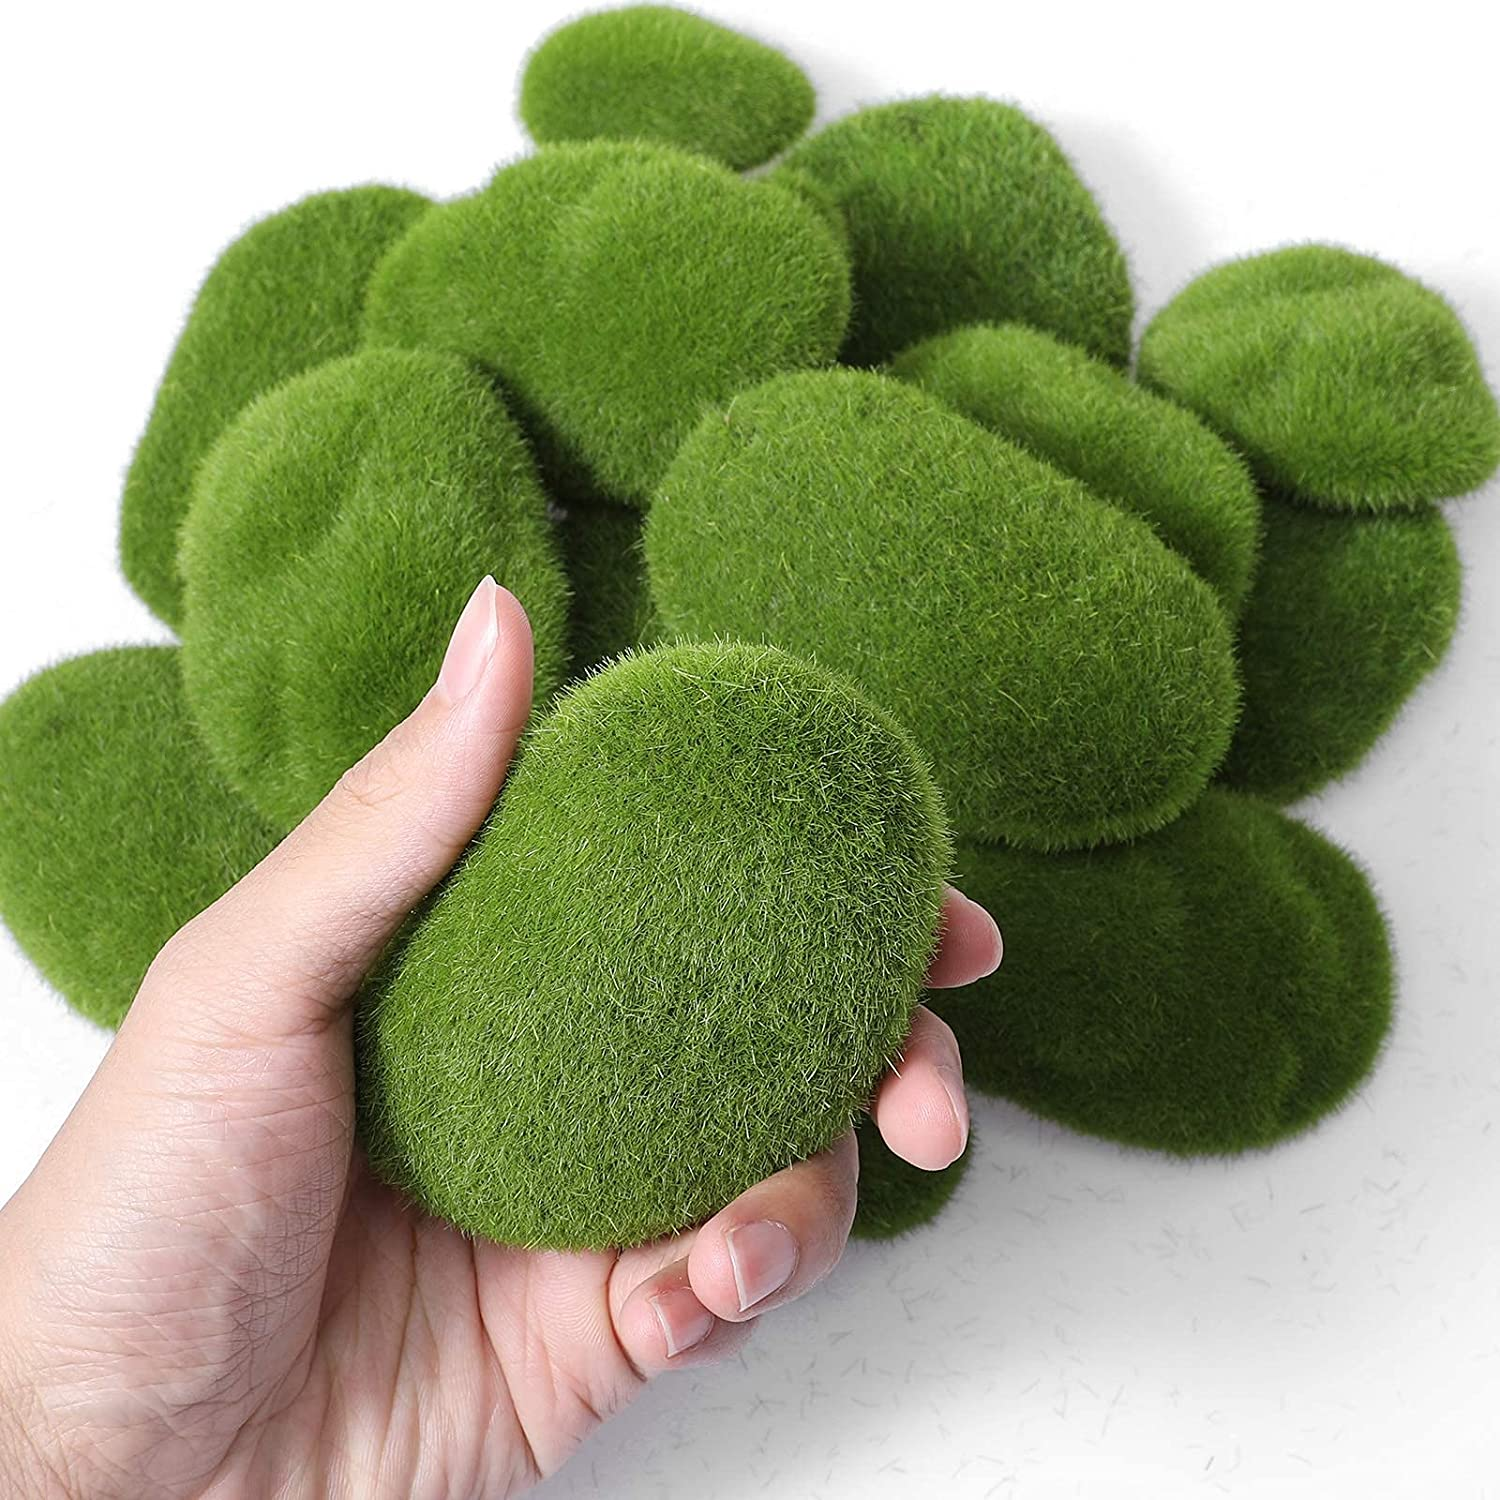 iClosam 28 PCS Artificial Moss Rocks,6 Sizes Simulation Green Moss Stones,Moss Covered Stones for Fairy Garden, Farmhouse, Plant Poted Decoration, Home Decor